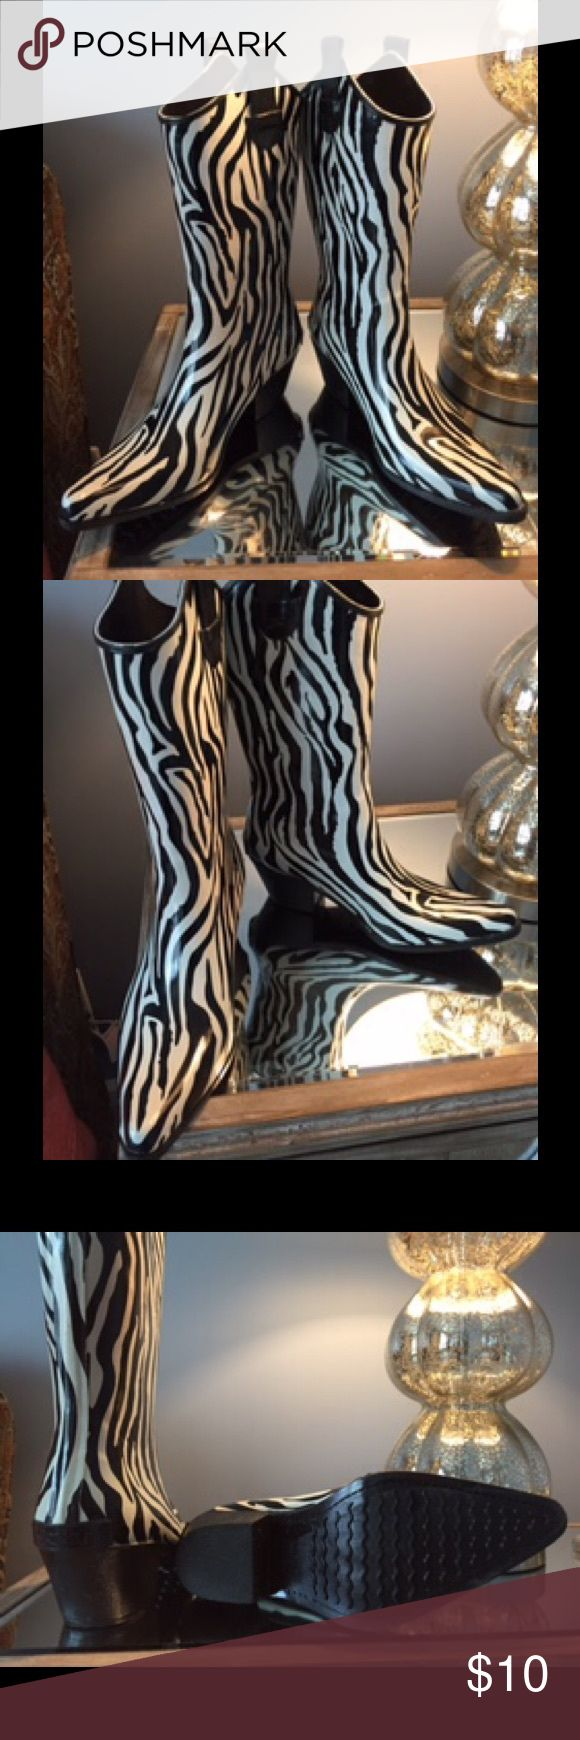 Corkys Zebra Black and White Rain Cowboy Boots Corkys Zebra print New cowboy style rain boots ☔️Size 6 Corkys Shoes Winter & Rain Boots